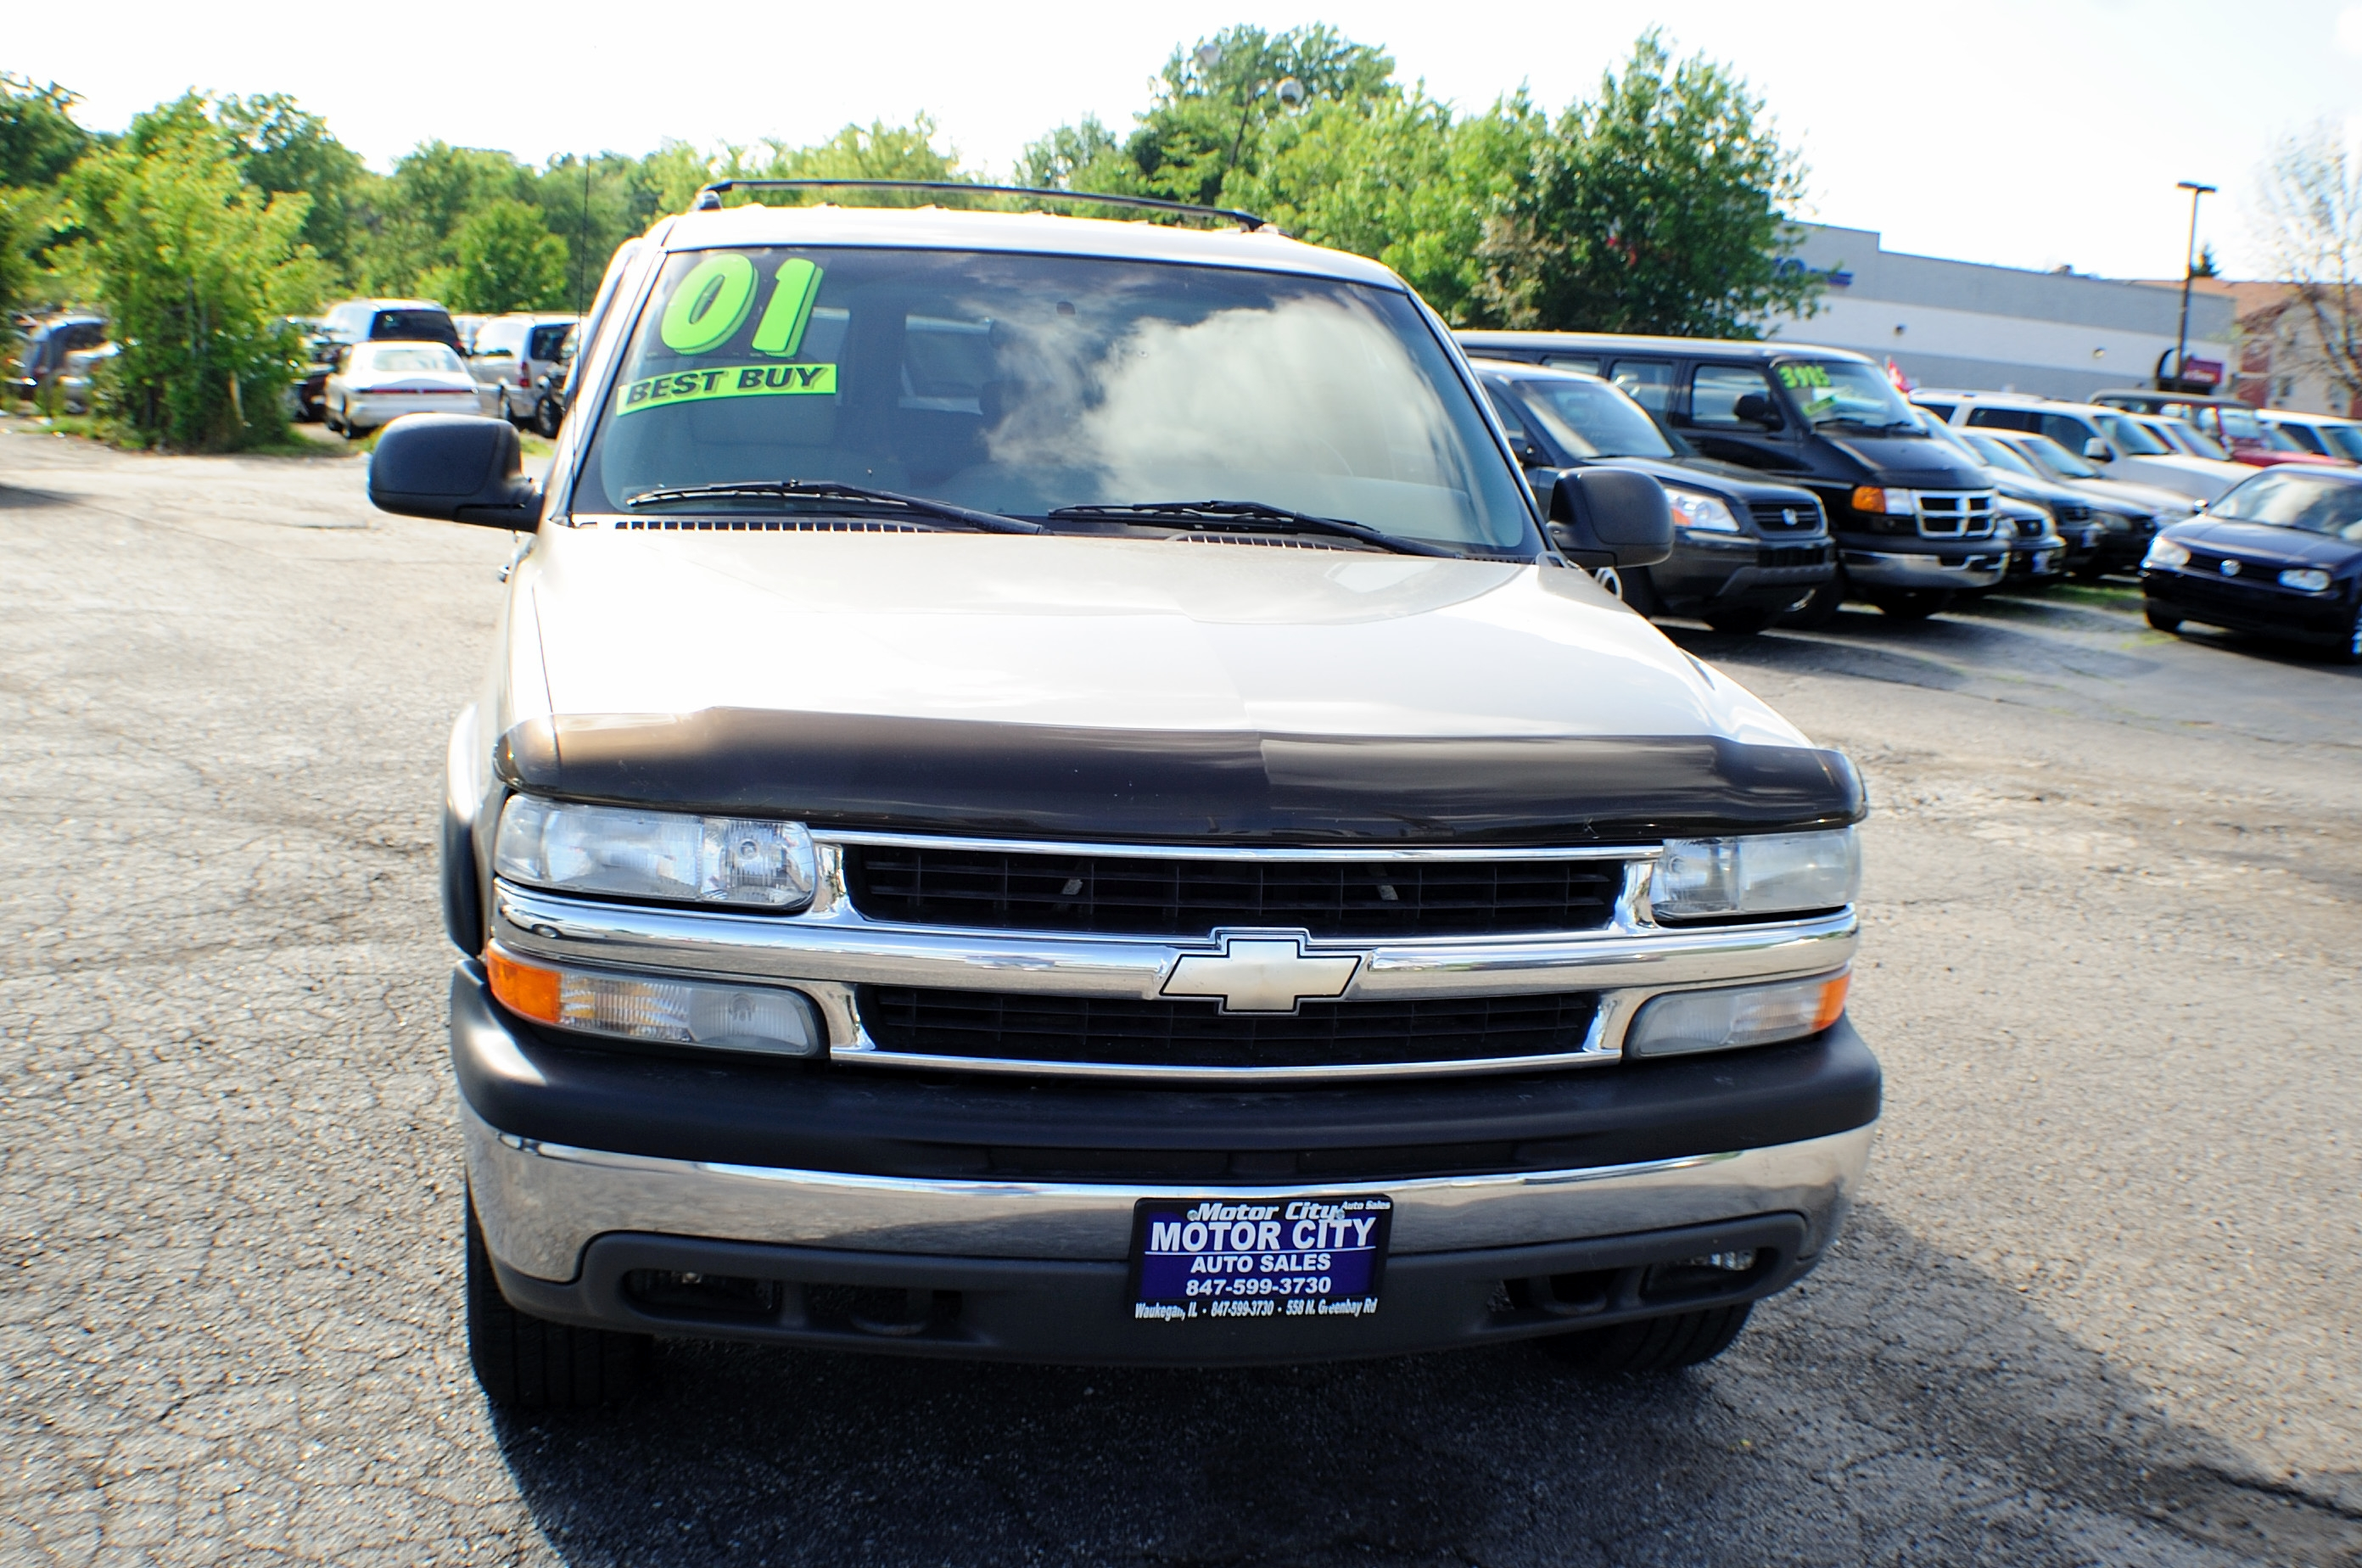 2001 Chevrolet Suburban LS Pewter 4x4 Tow SUV Used Car Sale Libertyville Beach Park